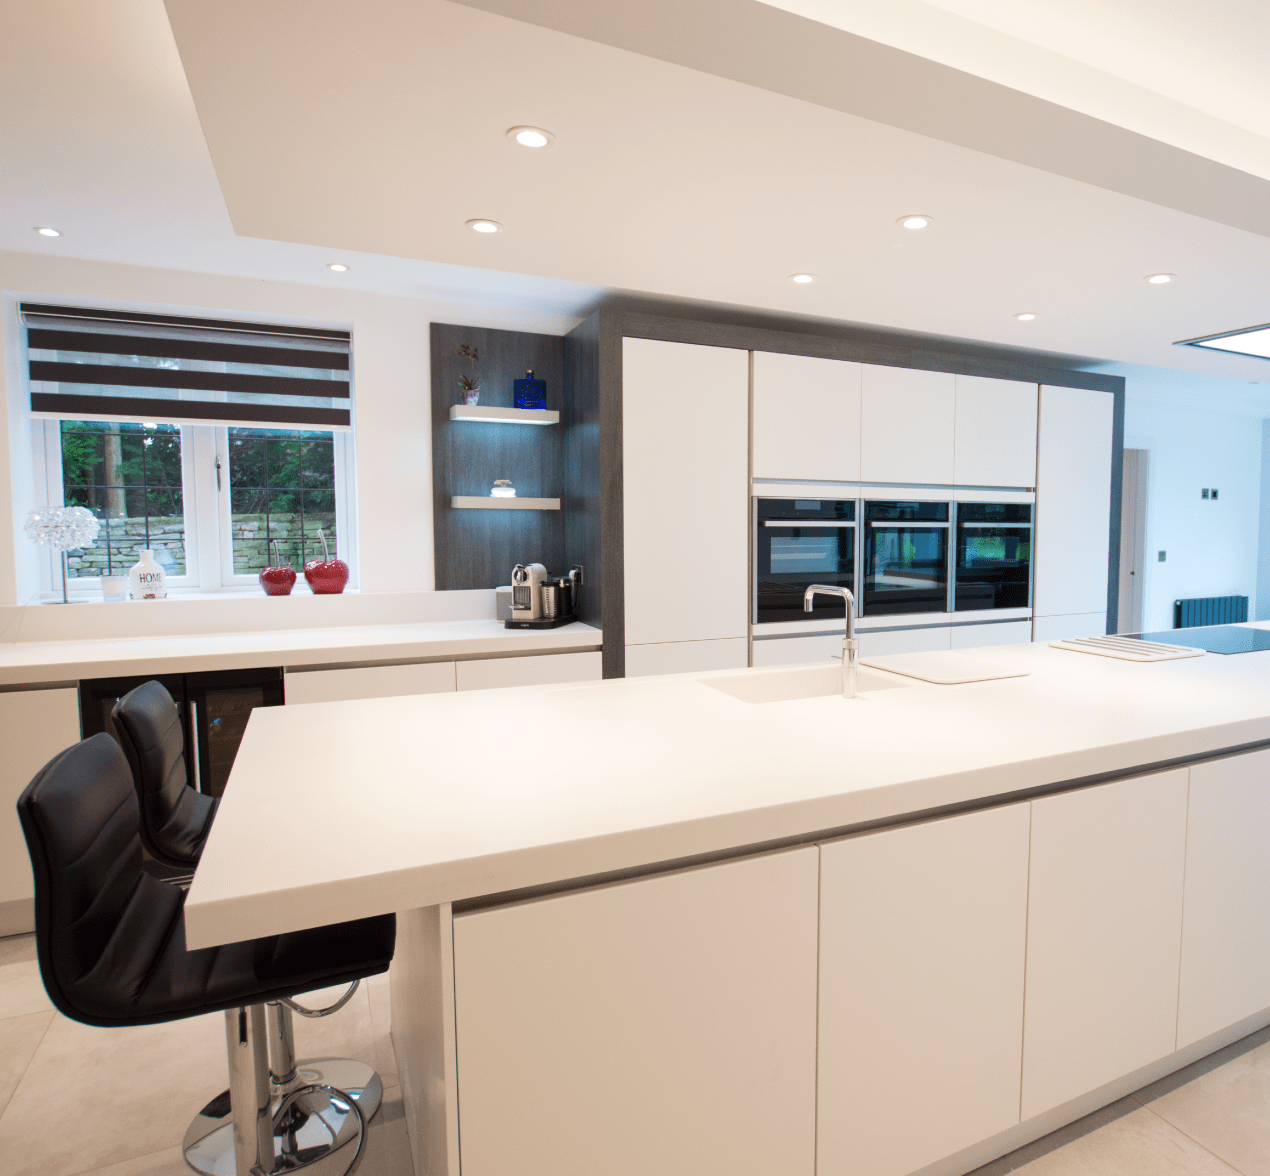 Family Kitchen Design Ideas For Cooking And Entertaining: The Contemporary Family Kitchen For Customers In Stockport